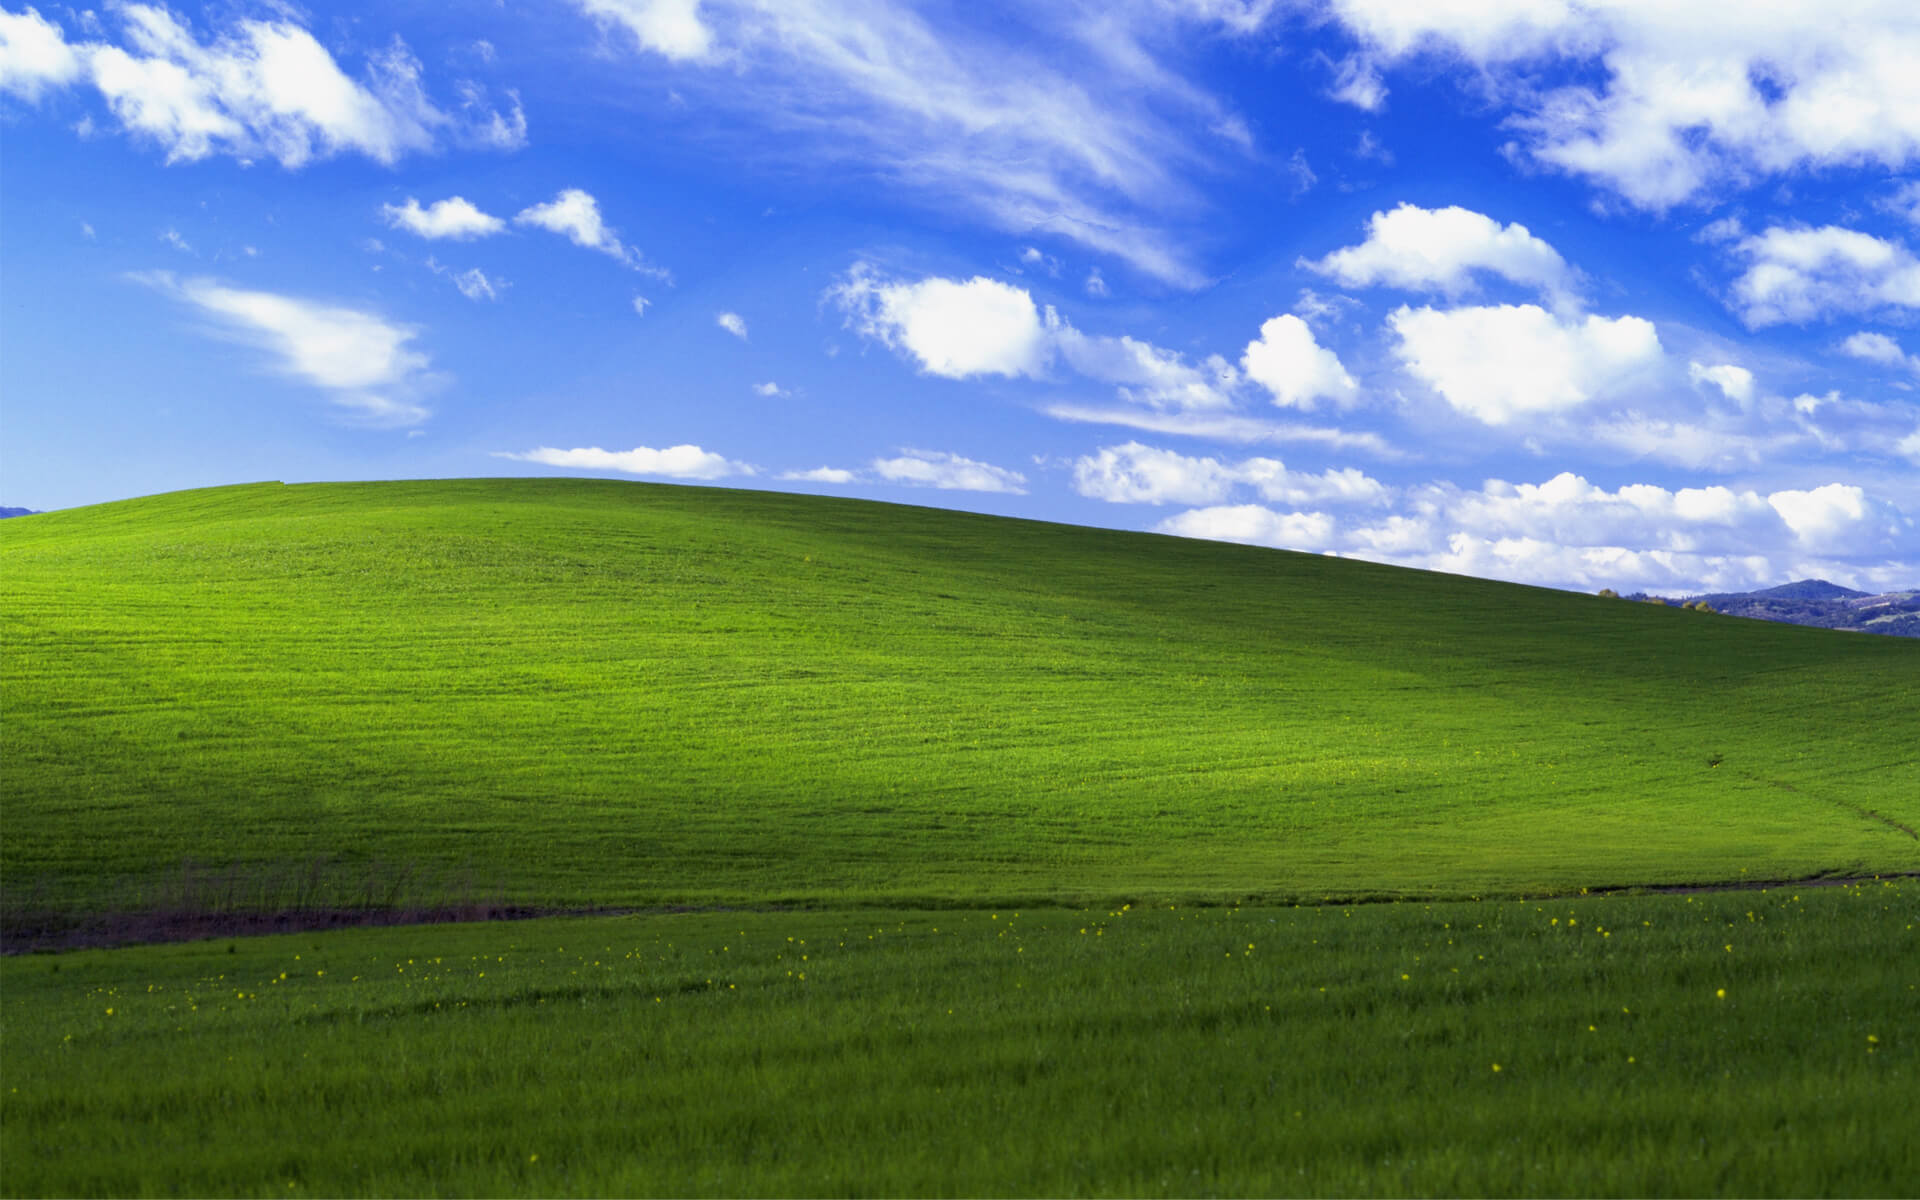 windows xp original background wallpaper - live desktop wallpaper